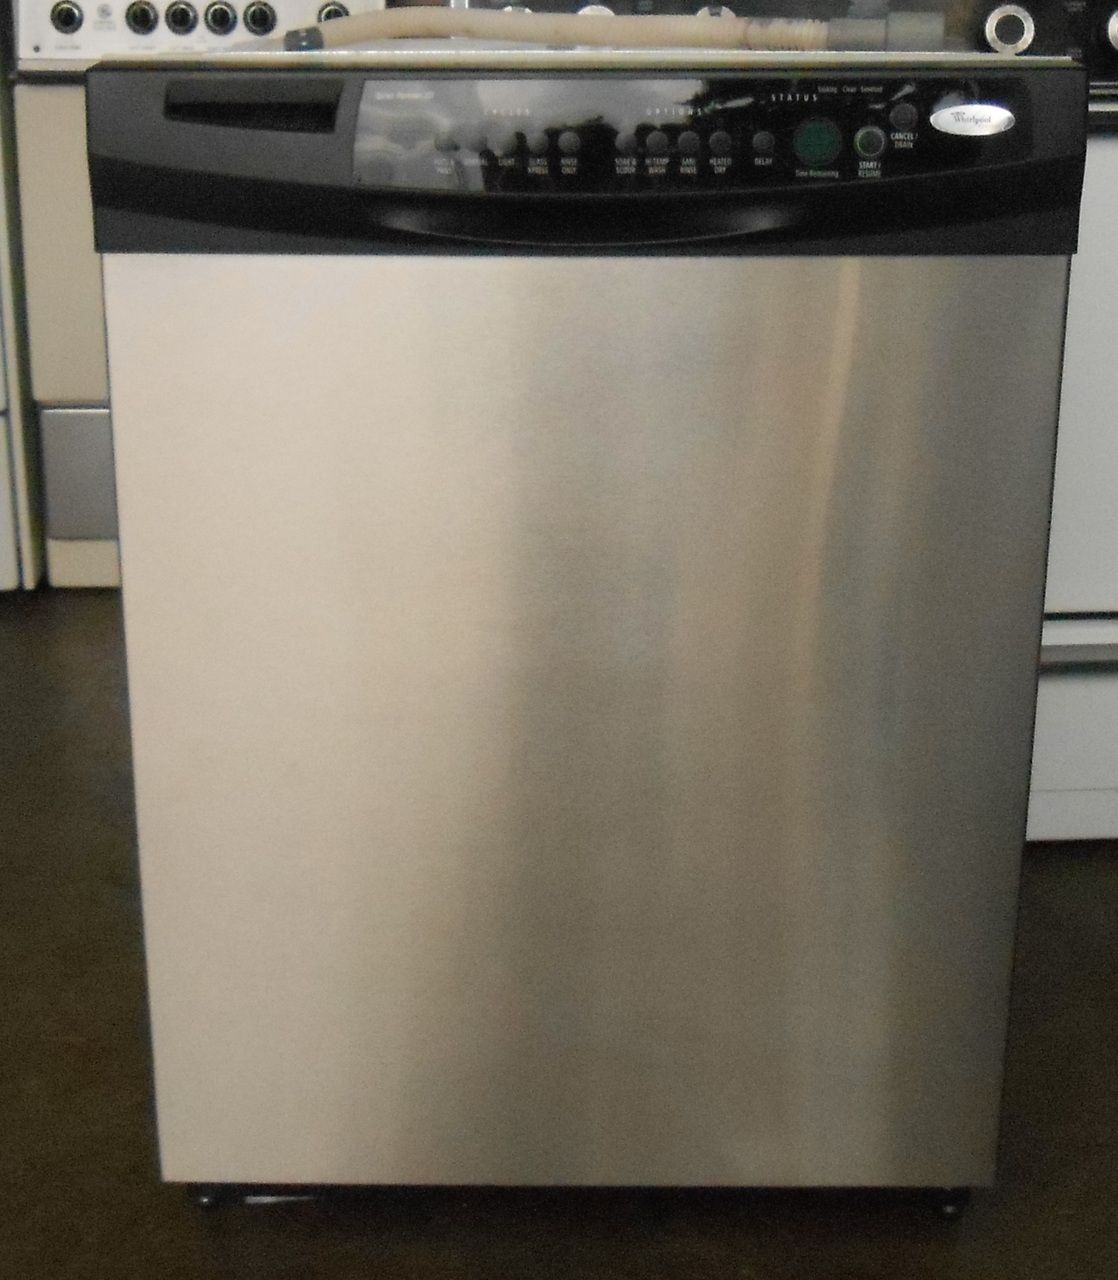 Appliance City Whirlpool Gold Full Console Dishwasher